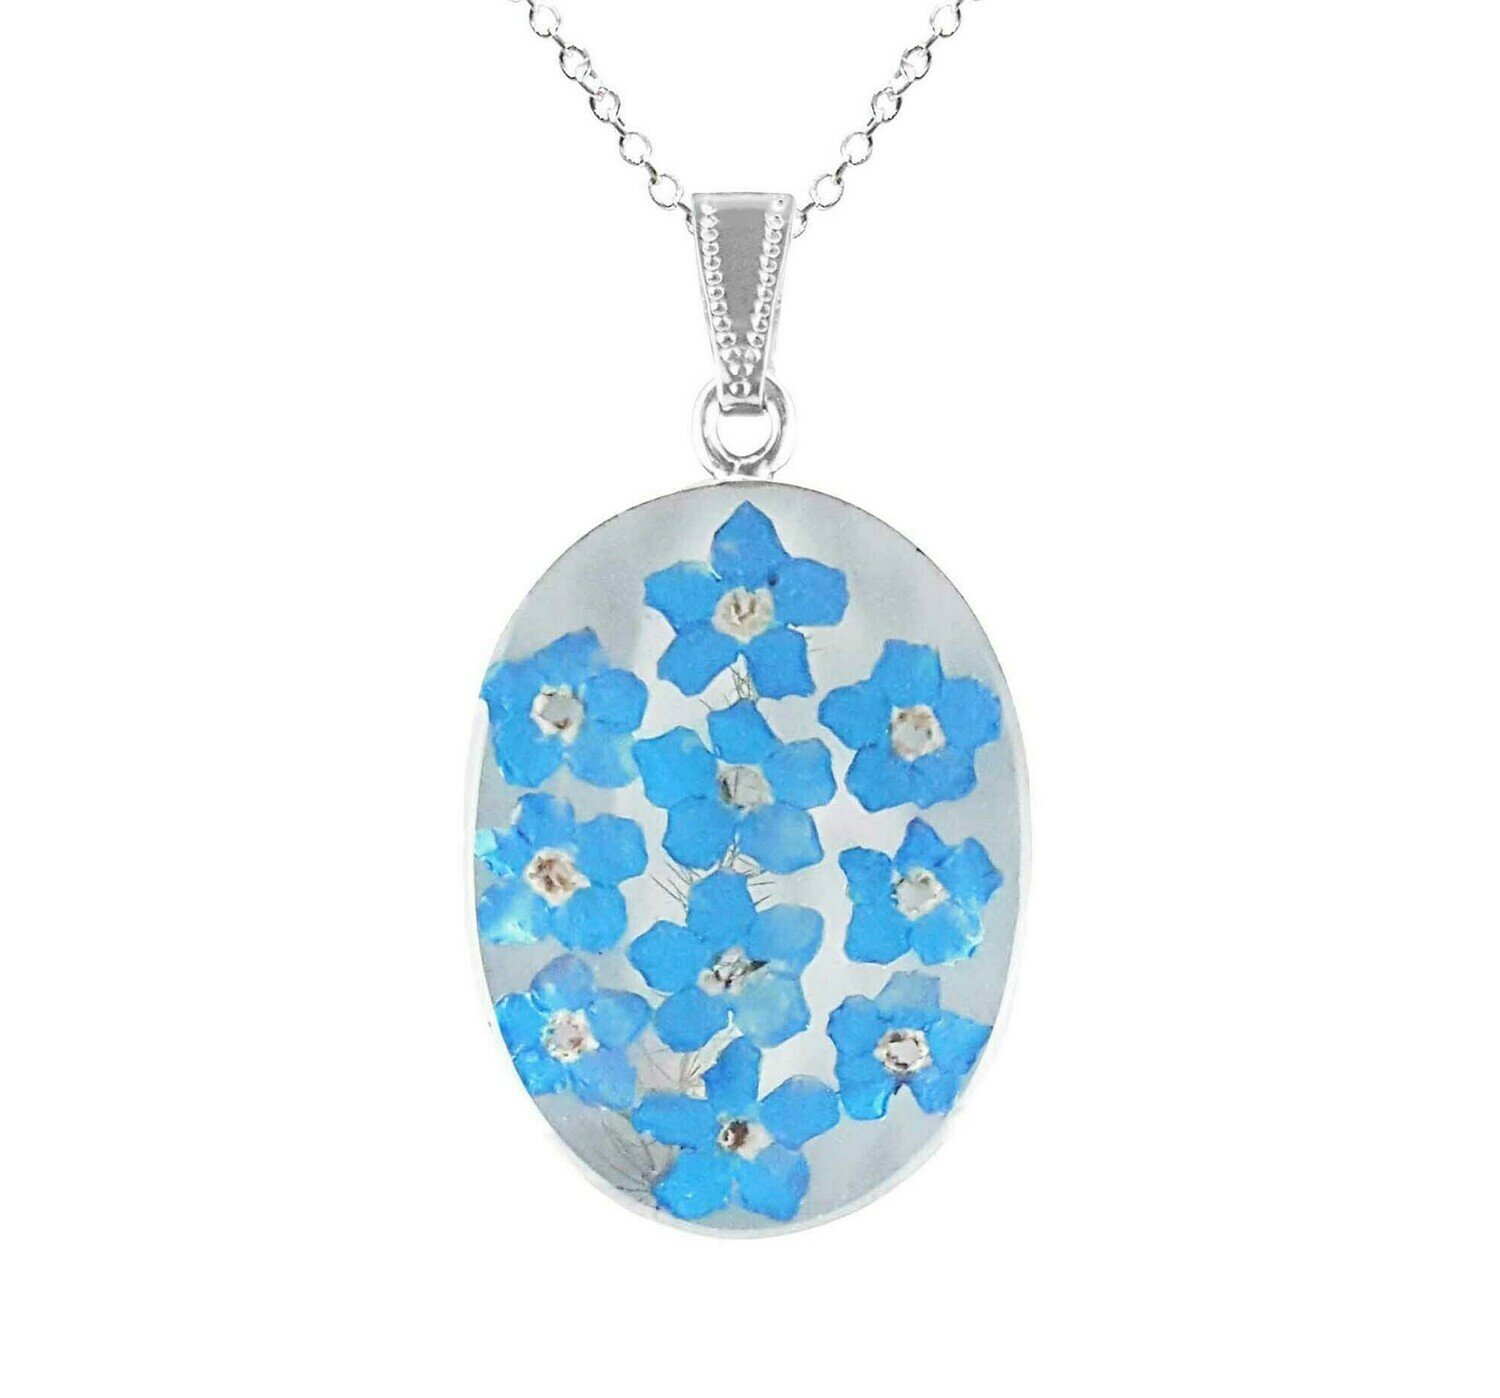 Forget-Me-Not Necklace, Large Oval, White Background